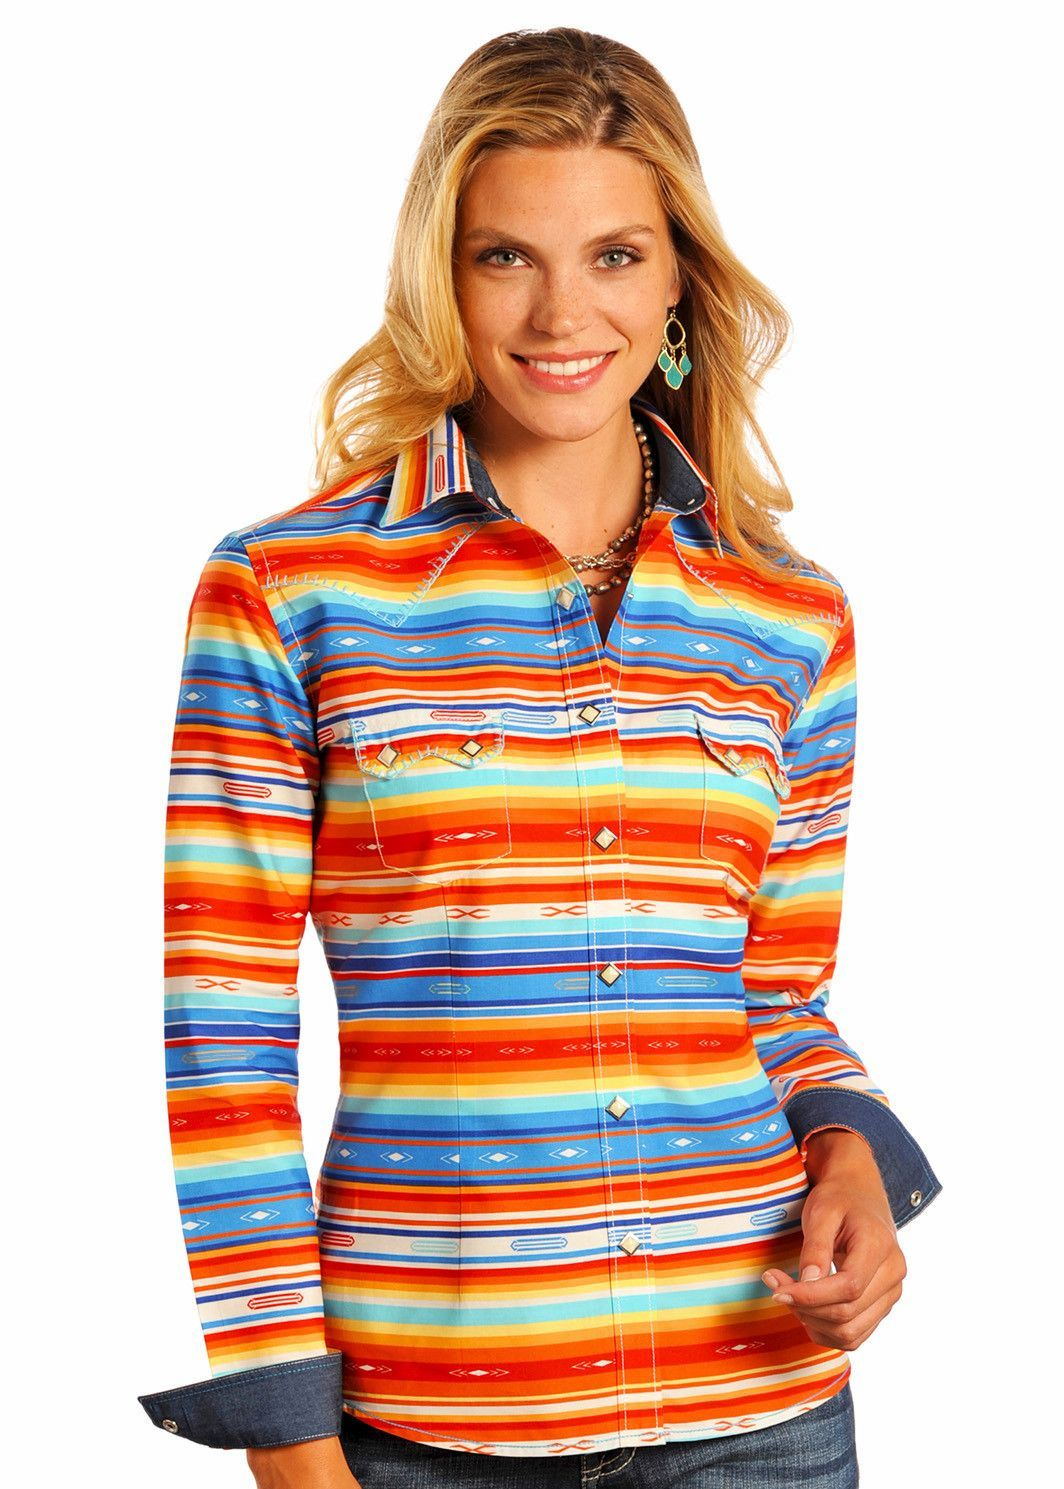 d45c94346bf0c1 Panhandle Slim Rough Stock Ladies Navajo Striped Snap Up Western Shirt  R4S7100